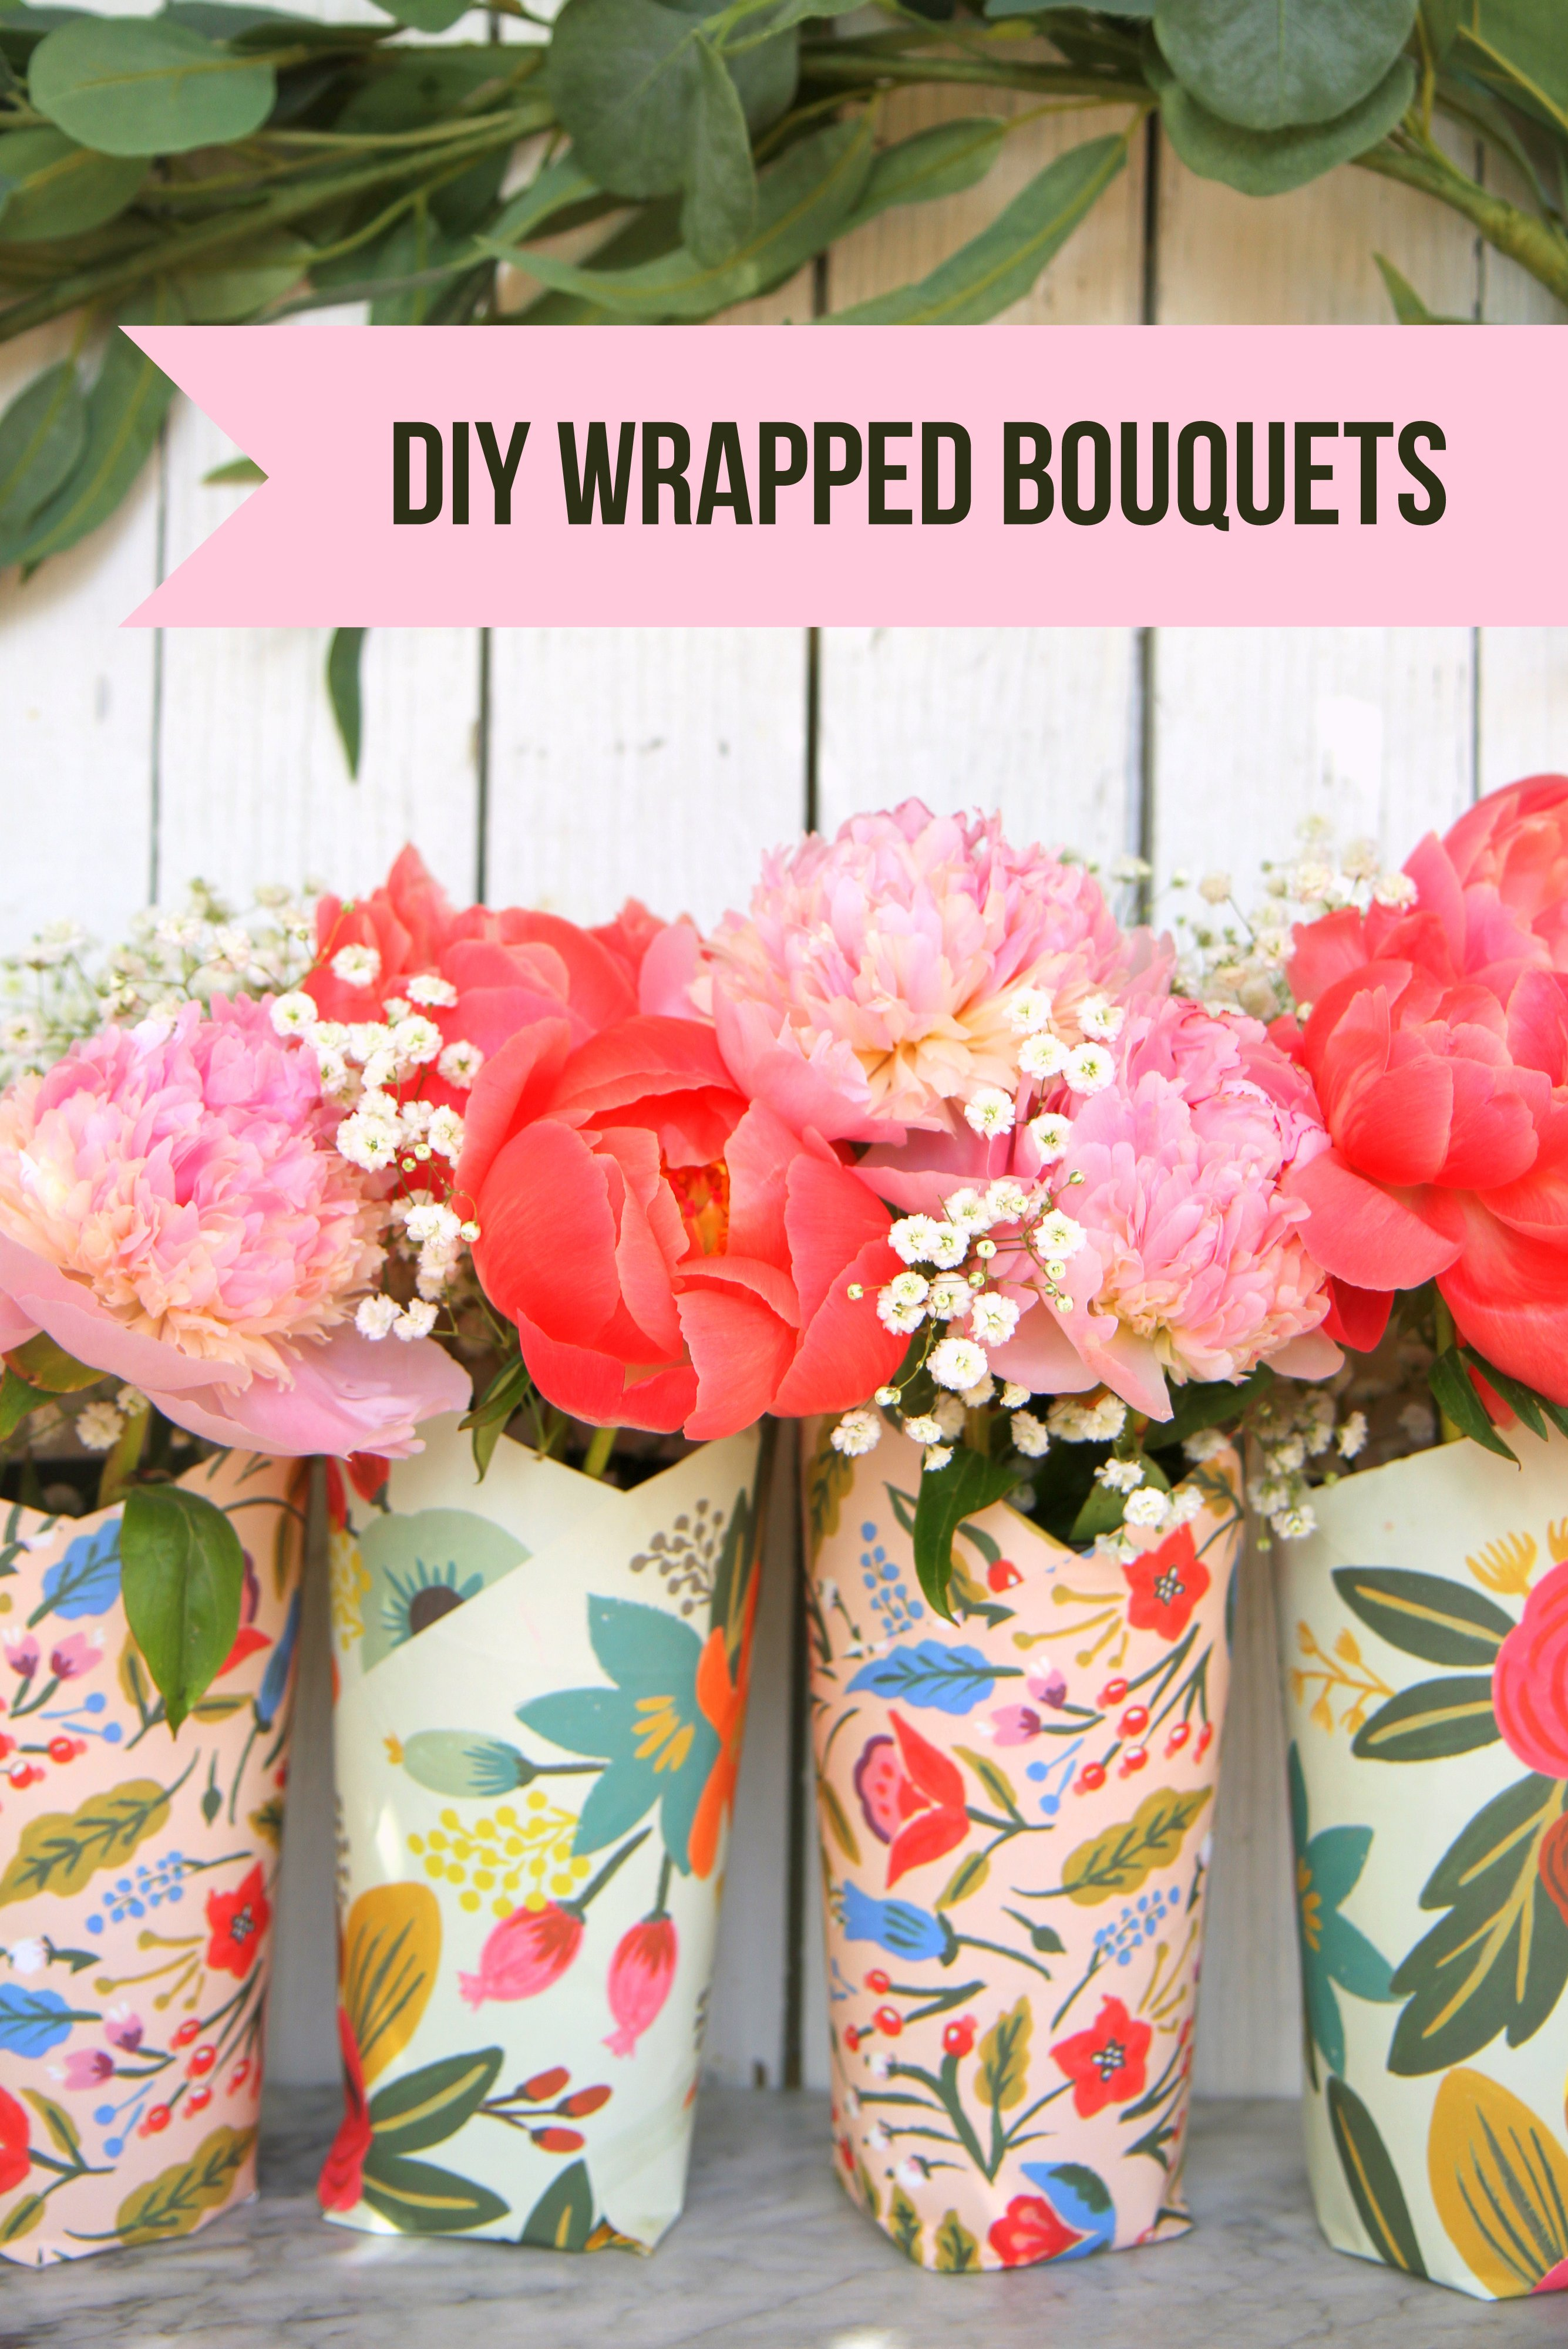 Put together these easy, pretty wrapped bouquets for Teacher Appreciation, Mother's Day, a birthday, or everyday!